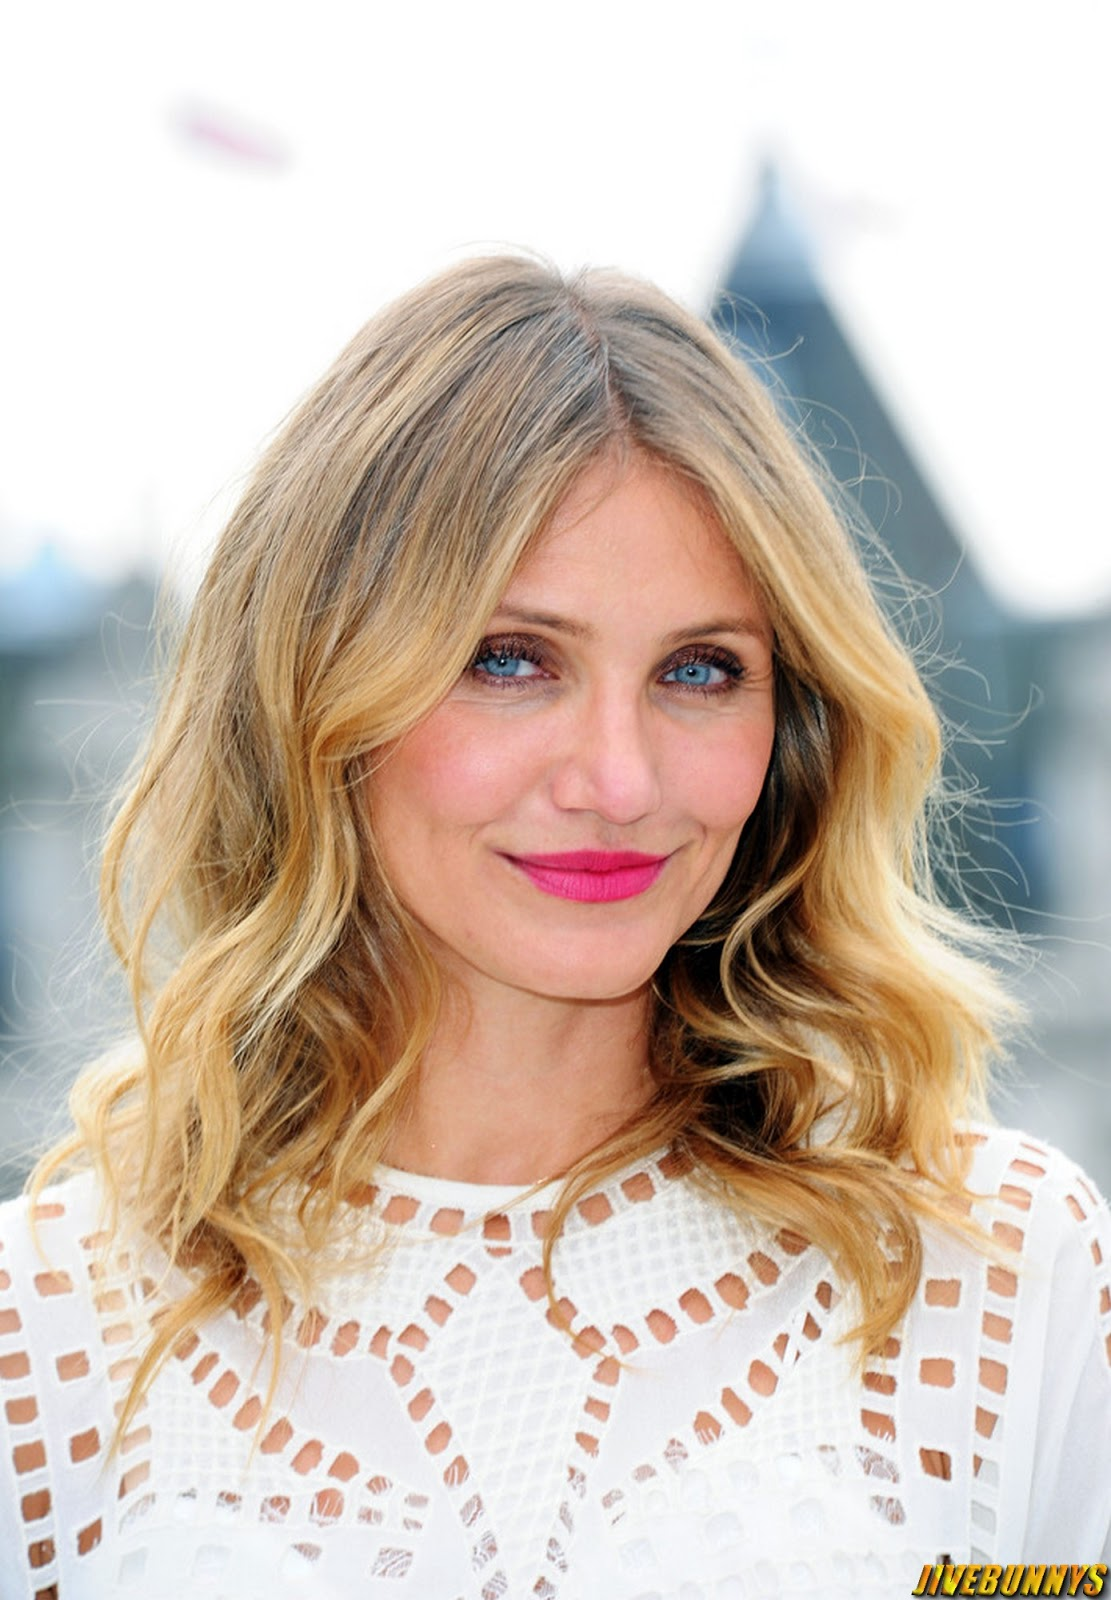 Cameron diaz photos and pictures gallery 4